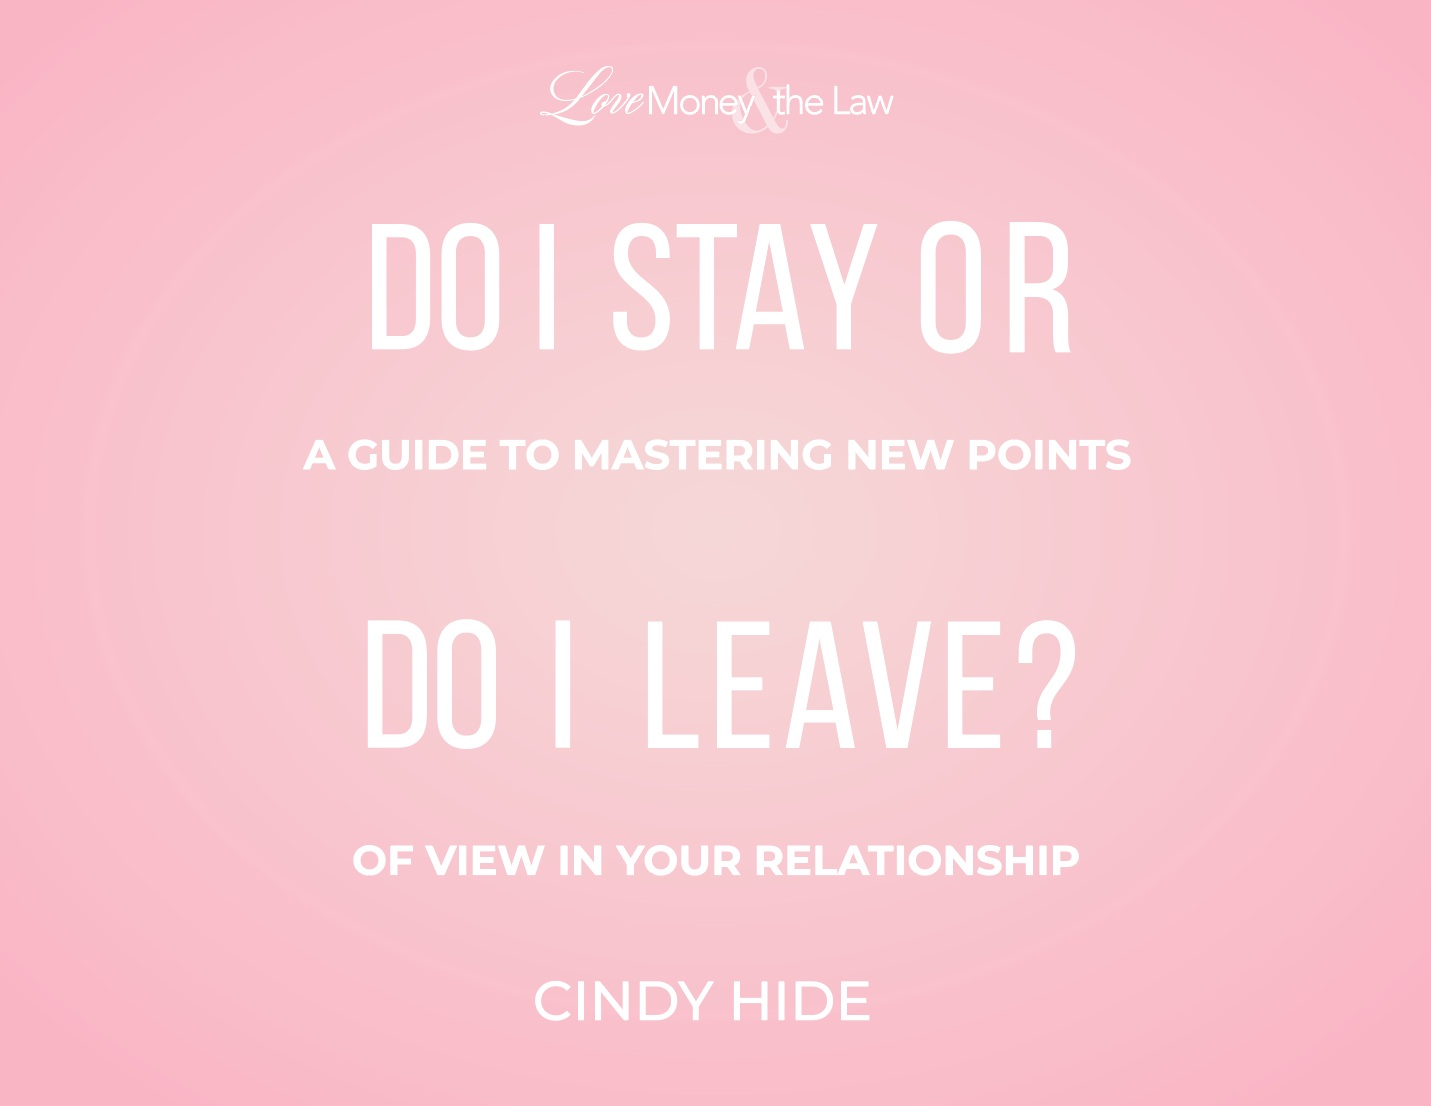 Seminar for Do I Stay or Do I Leave: A Guide to Mastering New Points of View in Your Relationship.